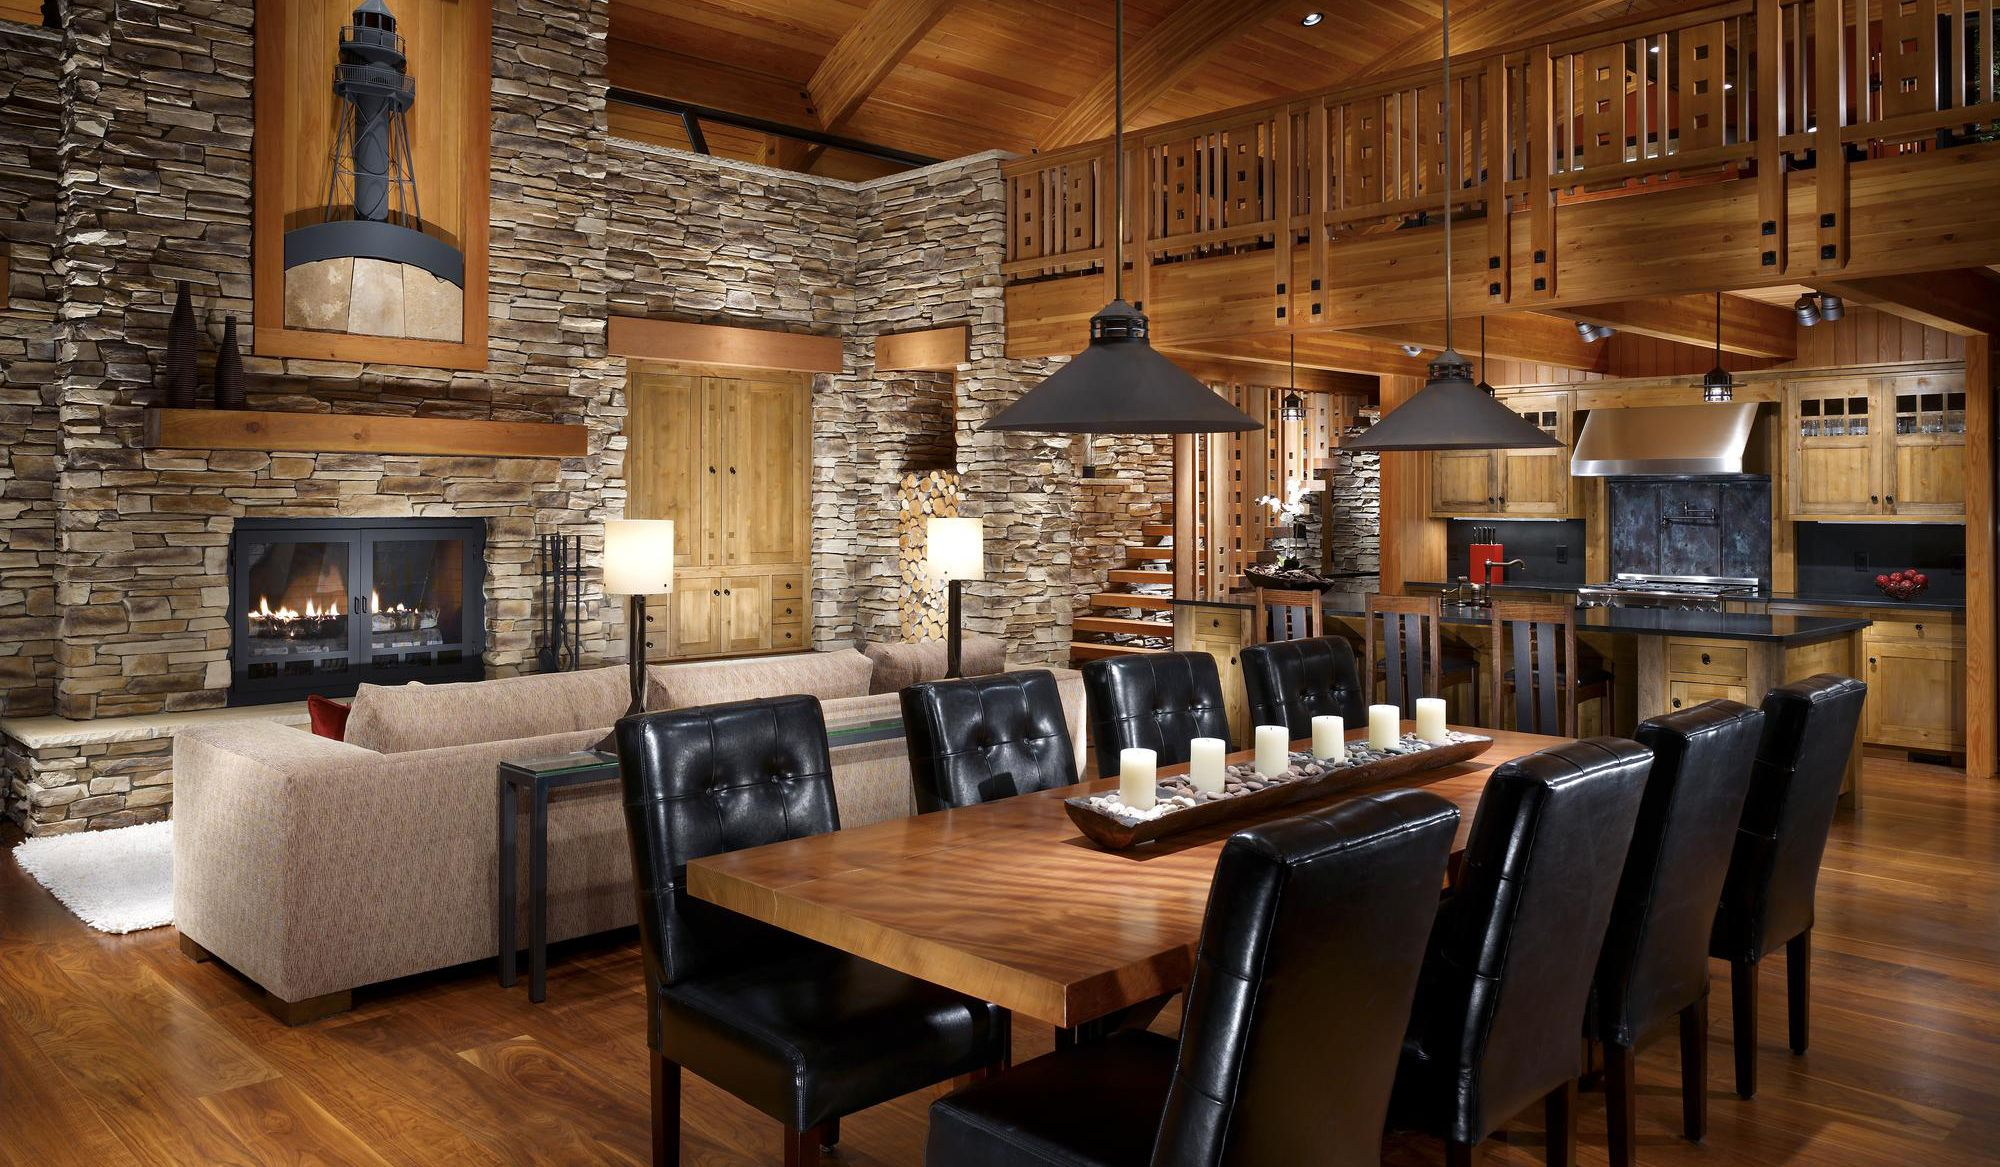 Beautiful rustic dining area dream home pinterest for Rustic dining area